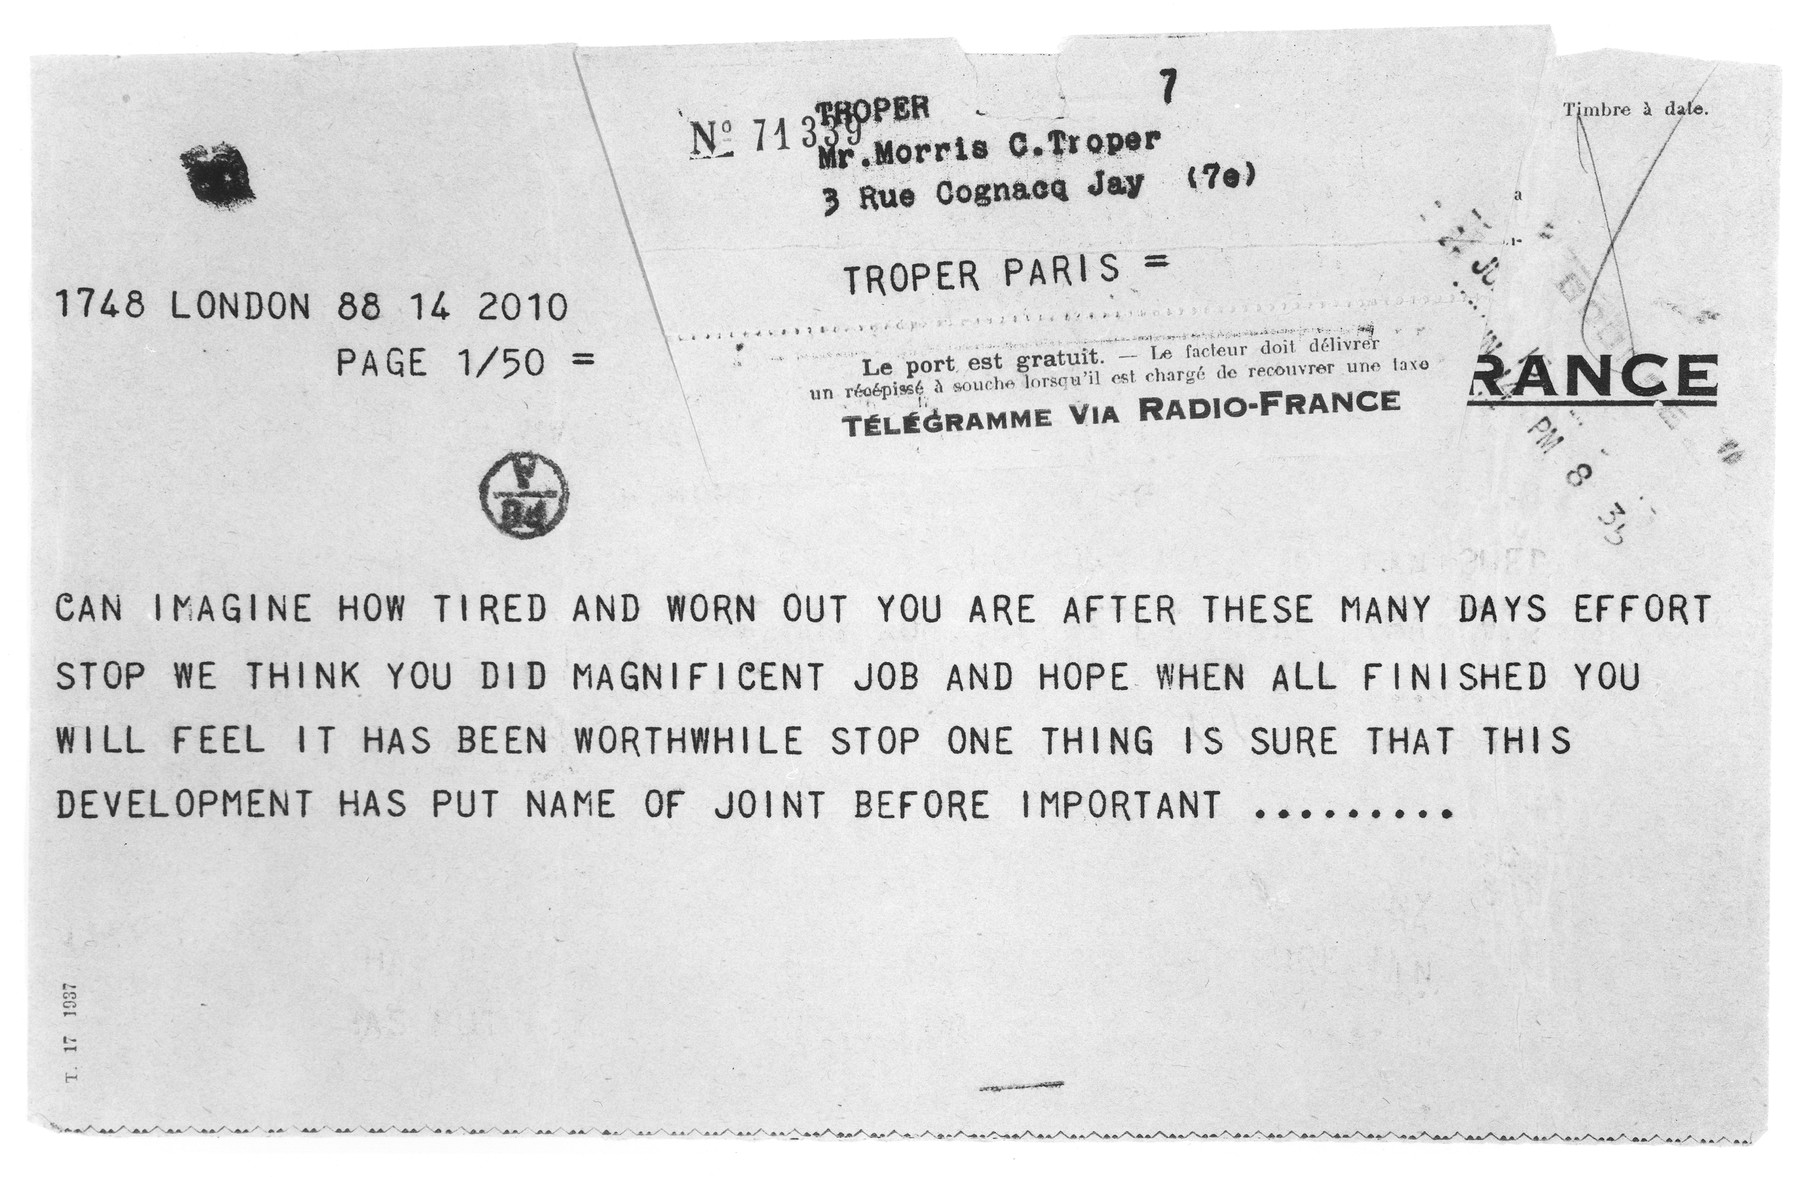 Telegram sent to JDC European Director Morris Troper in Paris by JDC Chairman Paul Baerwald and Harold Linder in London thanking him for his hard work in the successful resolution of the MS St. Louis refugee crisis.